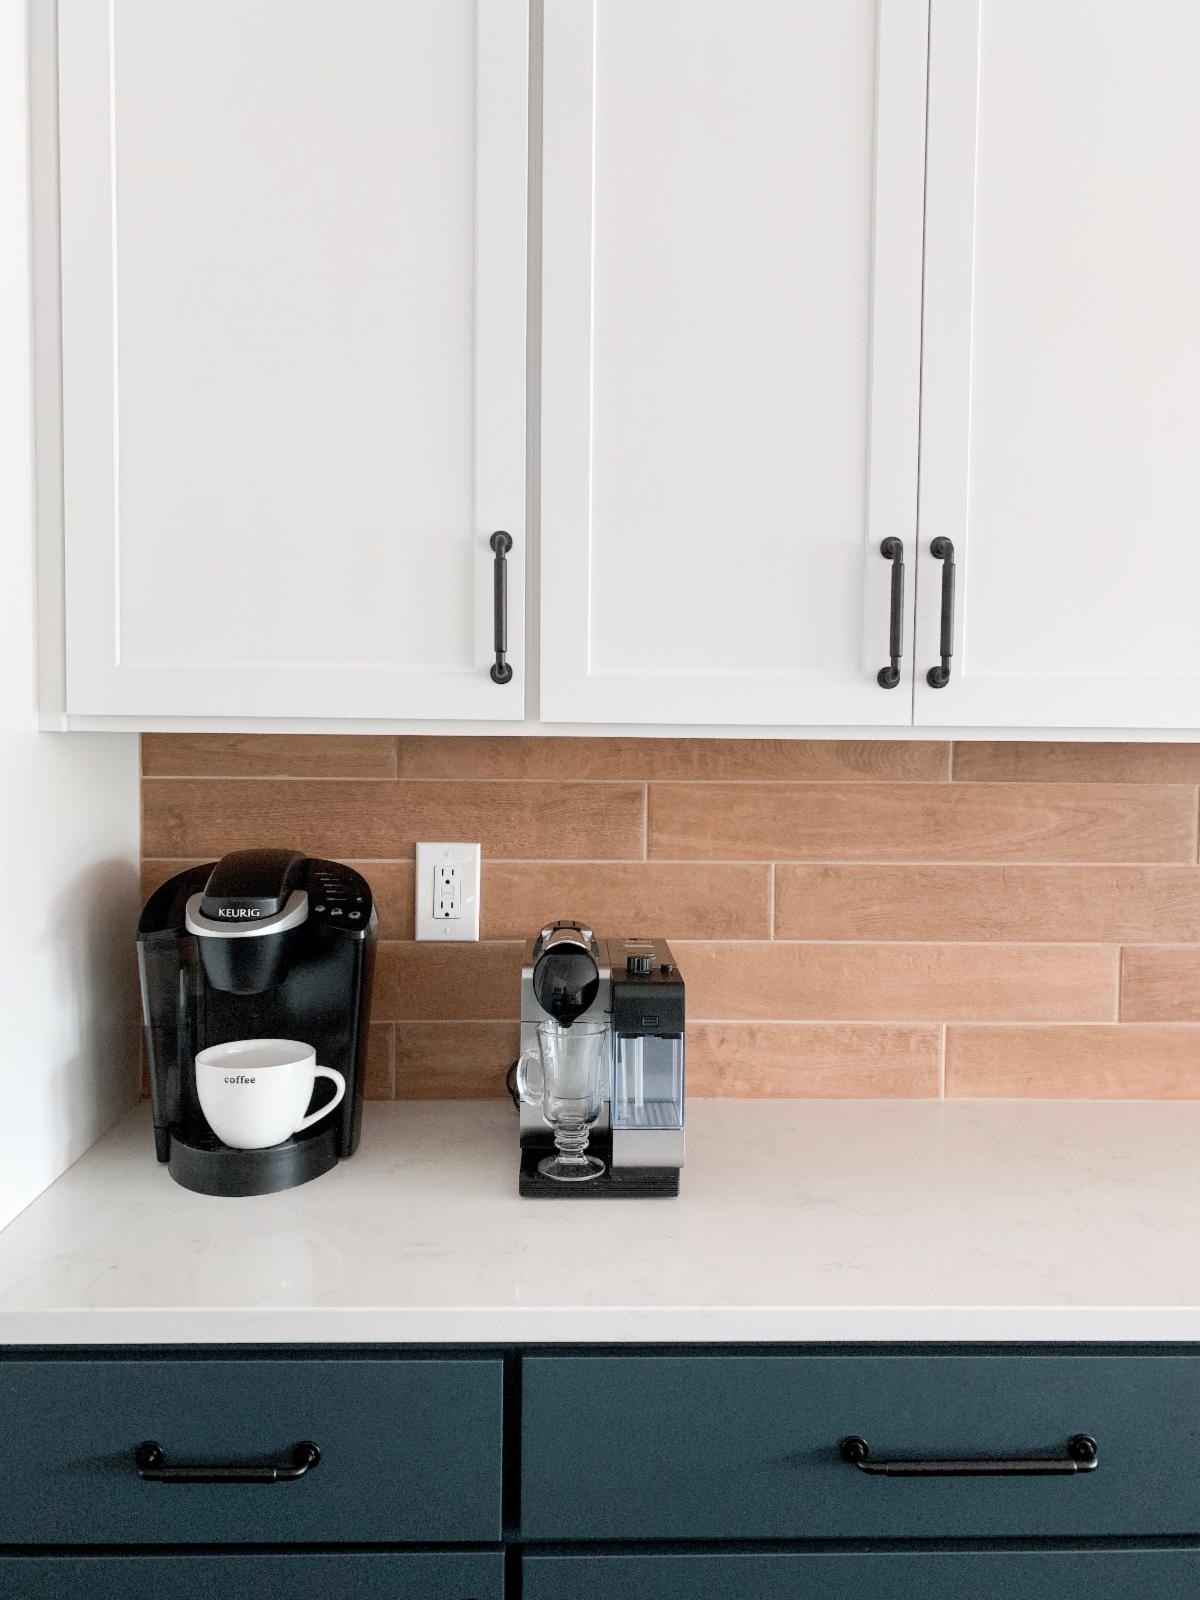 Kitchen Remodel Two-Toned Shaker Cabinets Matte Black Hardware Quartz Countertops Wood Plank Tile Backsplash